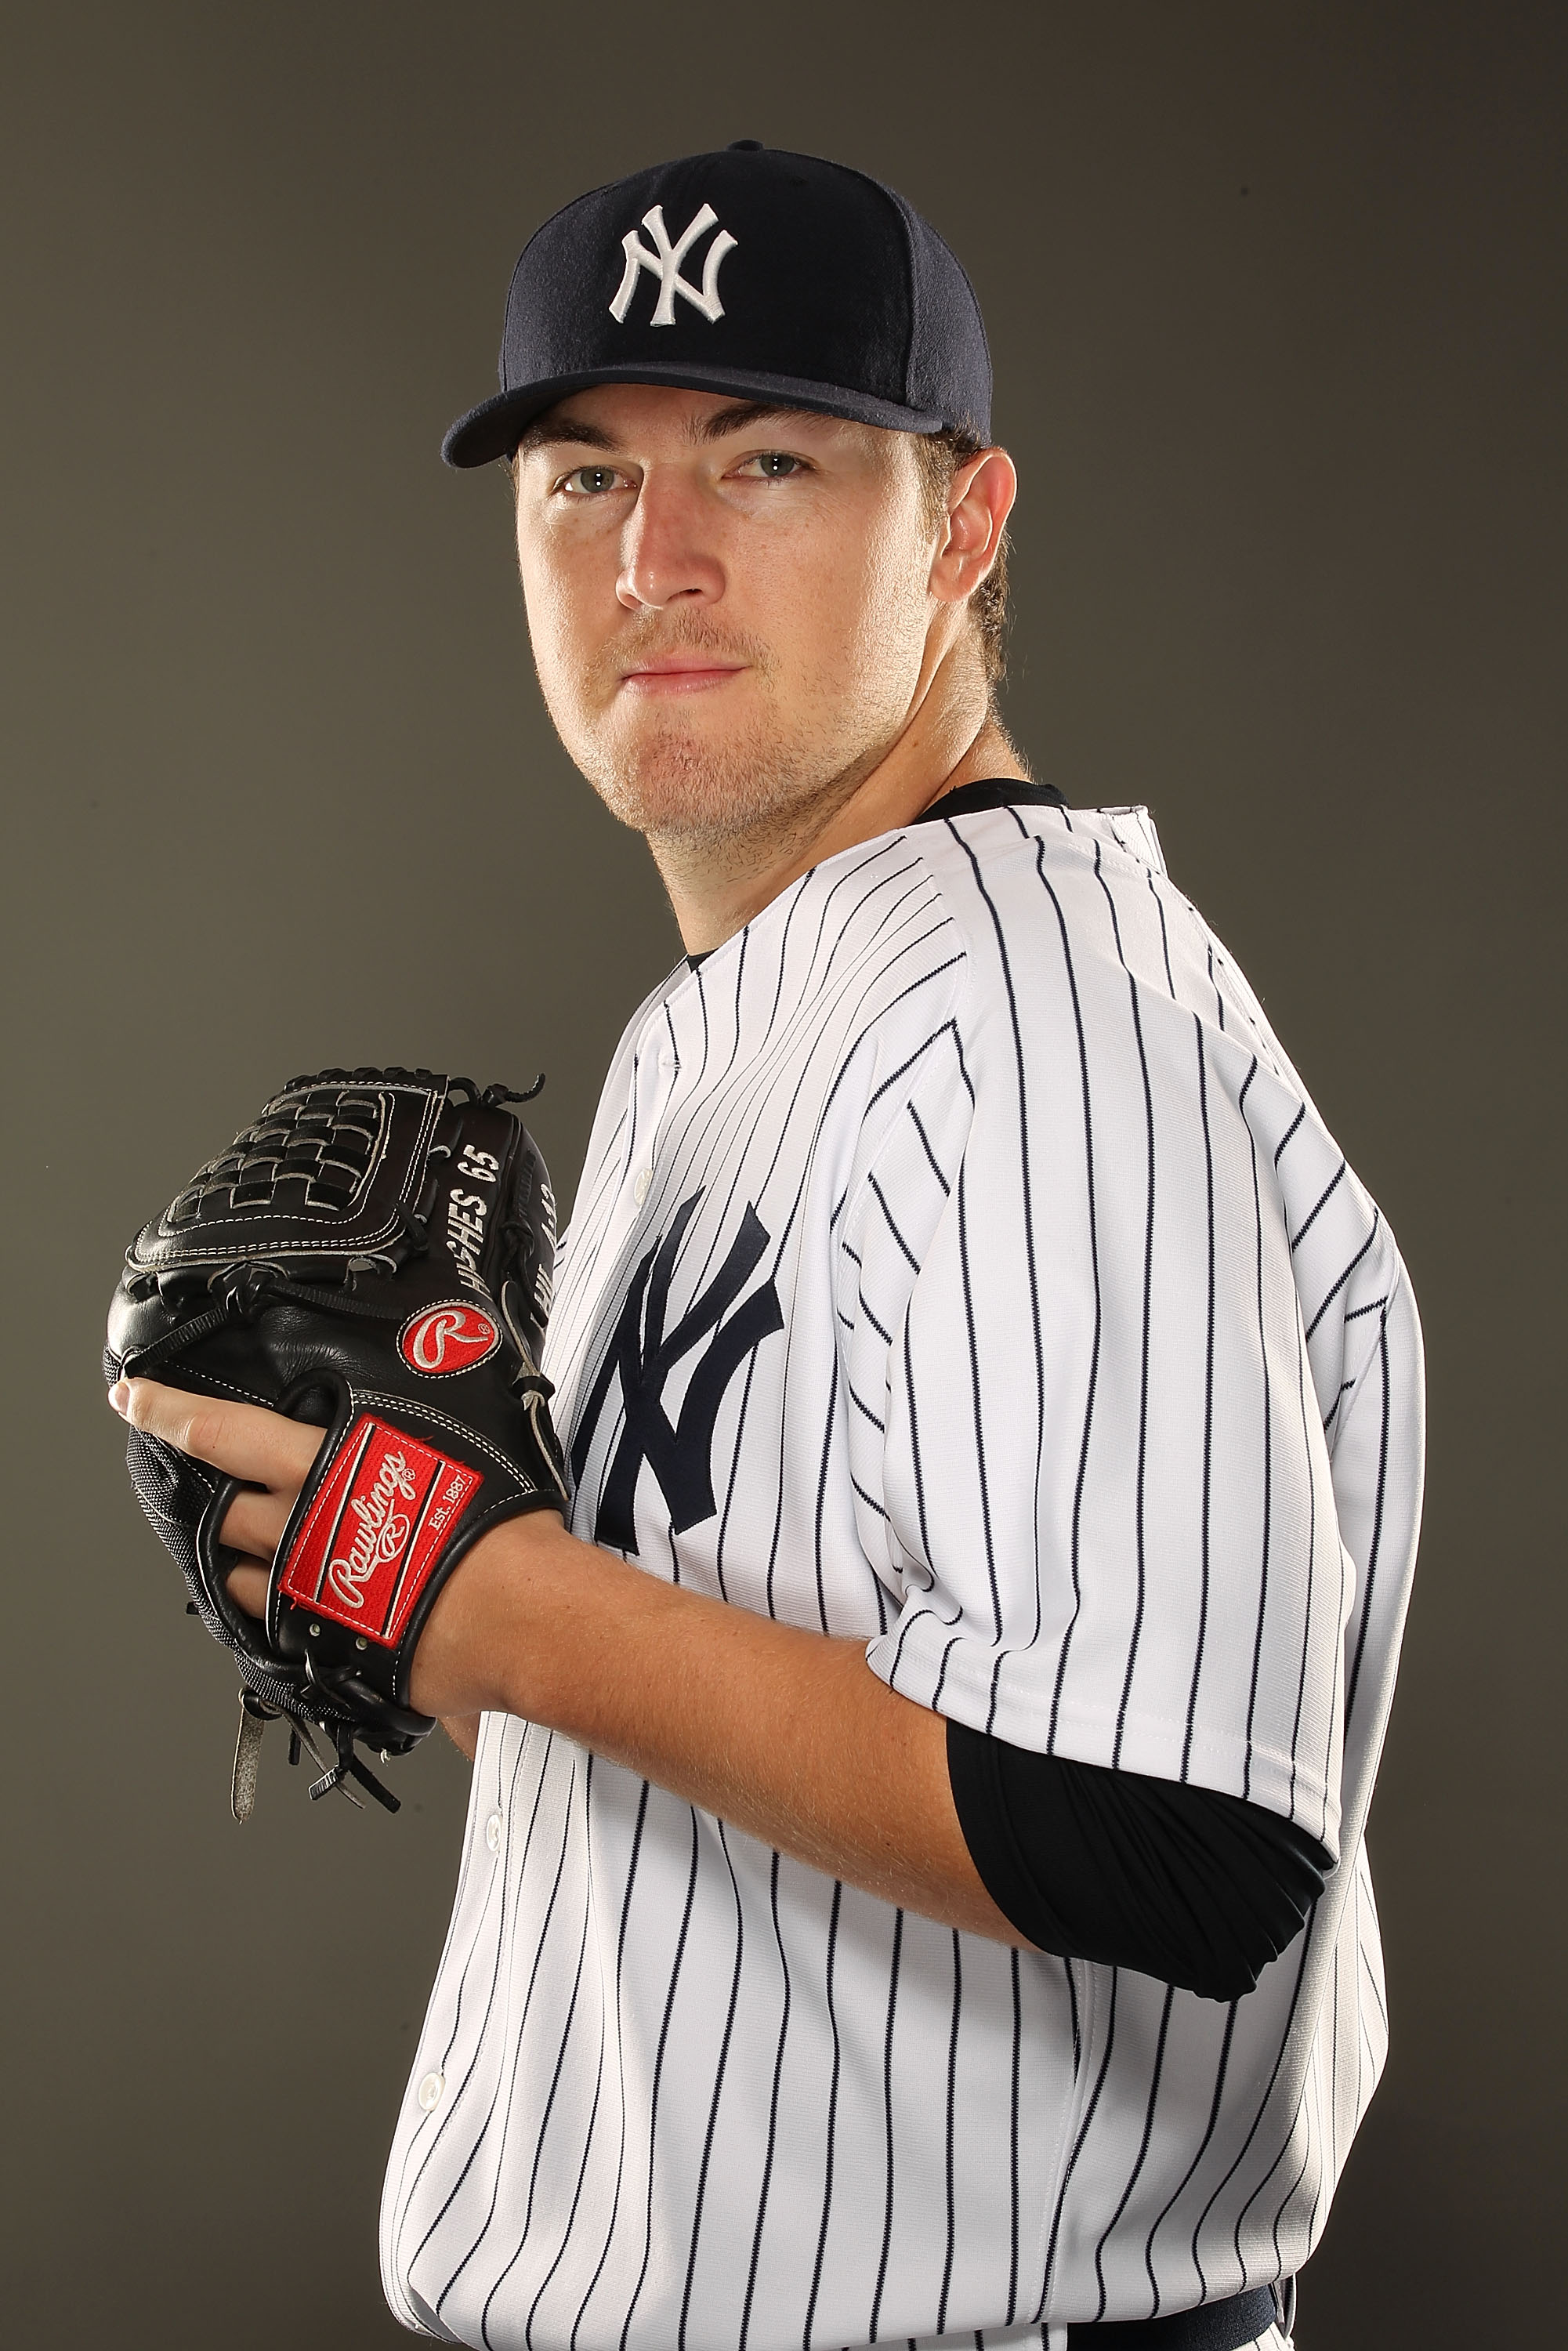 TAMPA, FL - FEBRUARY 23:  Phil Hughes #65 of the New York Yankees poses for a portrait on Photo Day at George M. Steinbrenner Field on February 23, 2011 in Tampa, Florida.  (Photo by Al Bello/Getty Images)